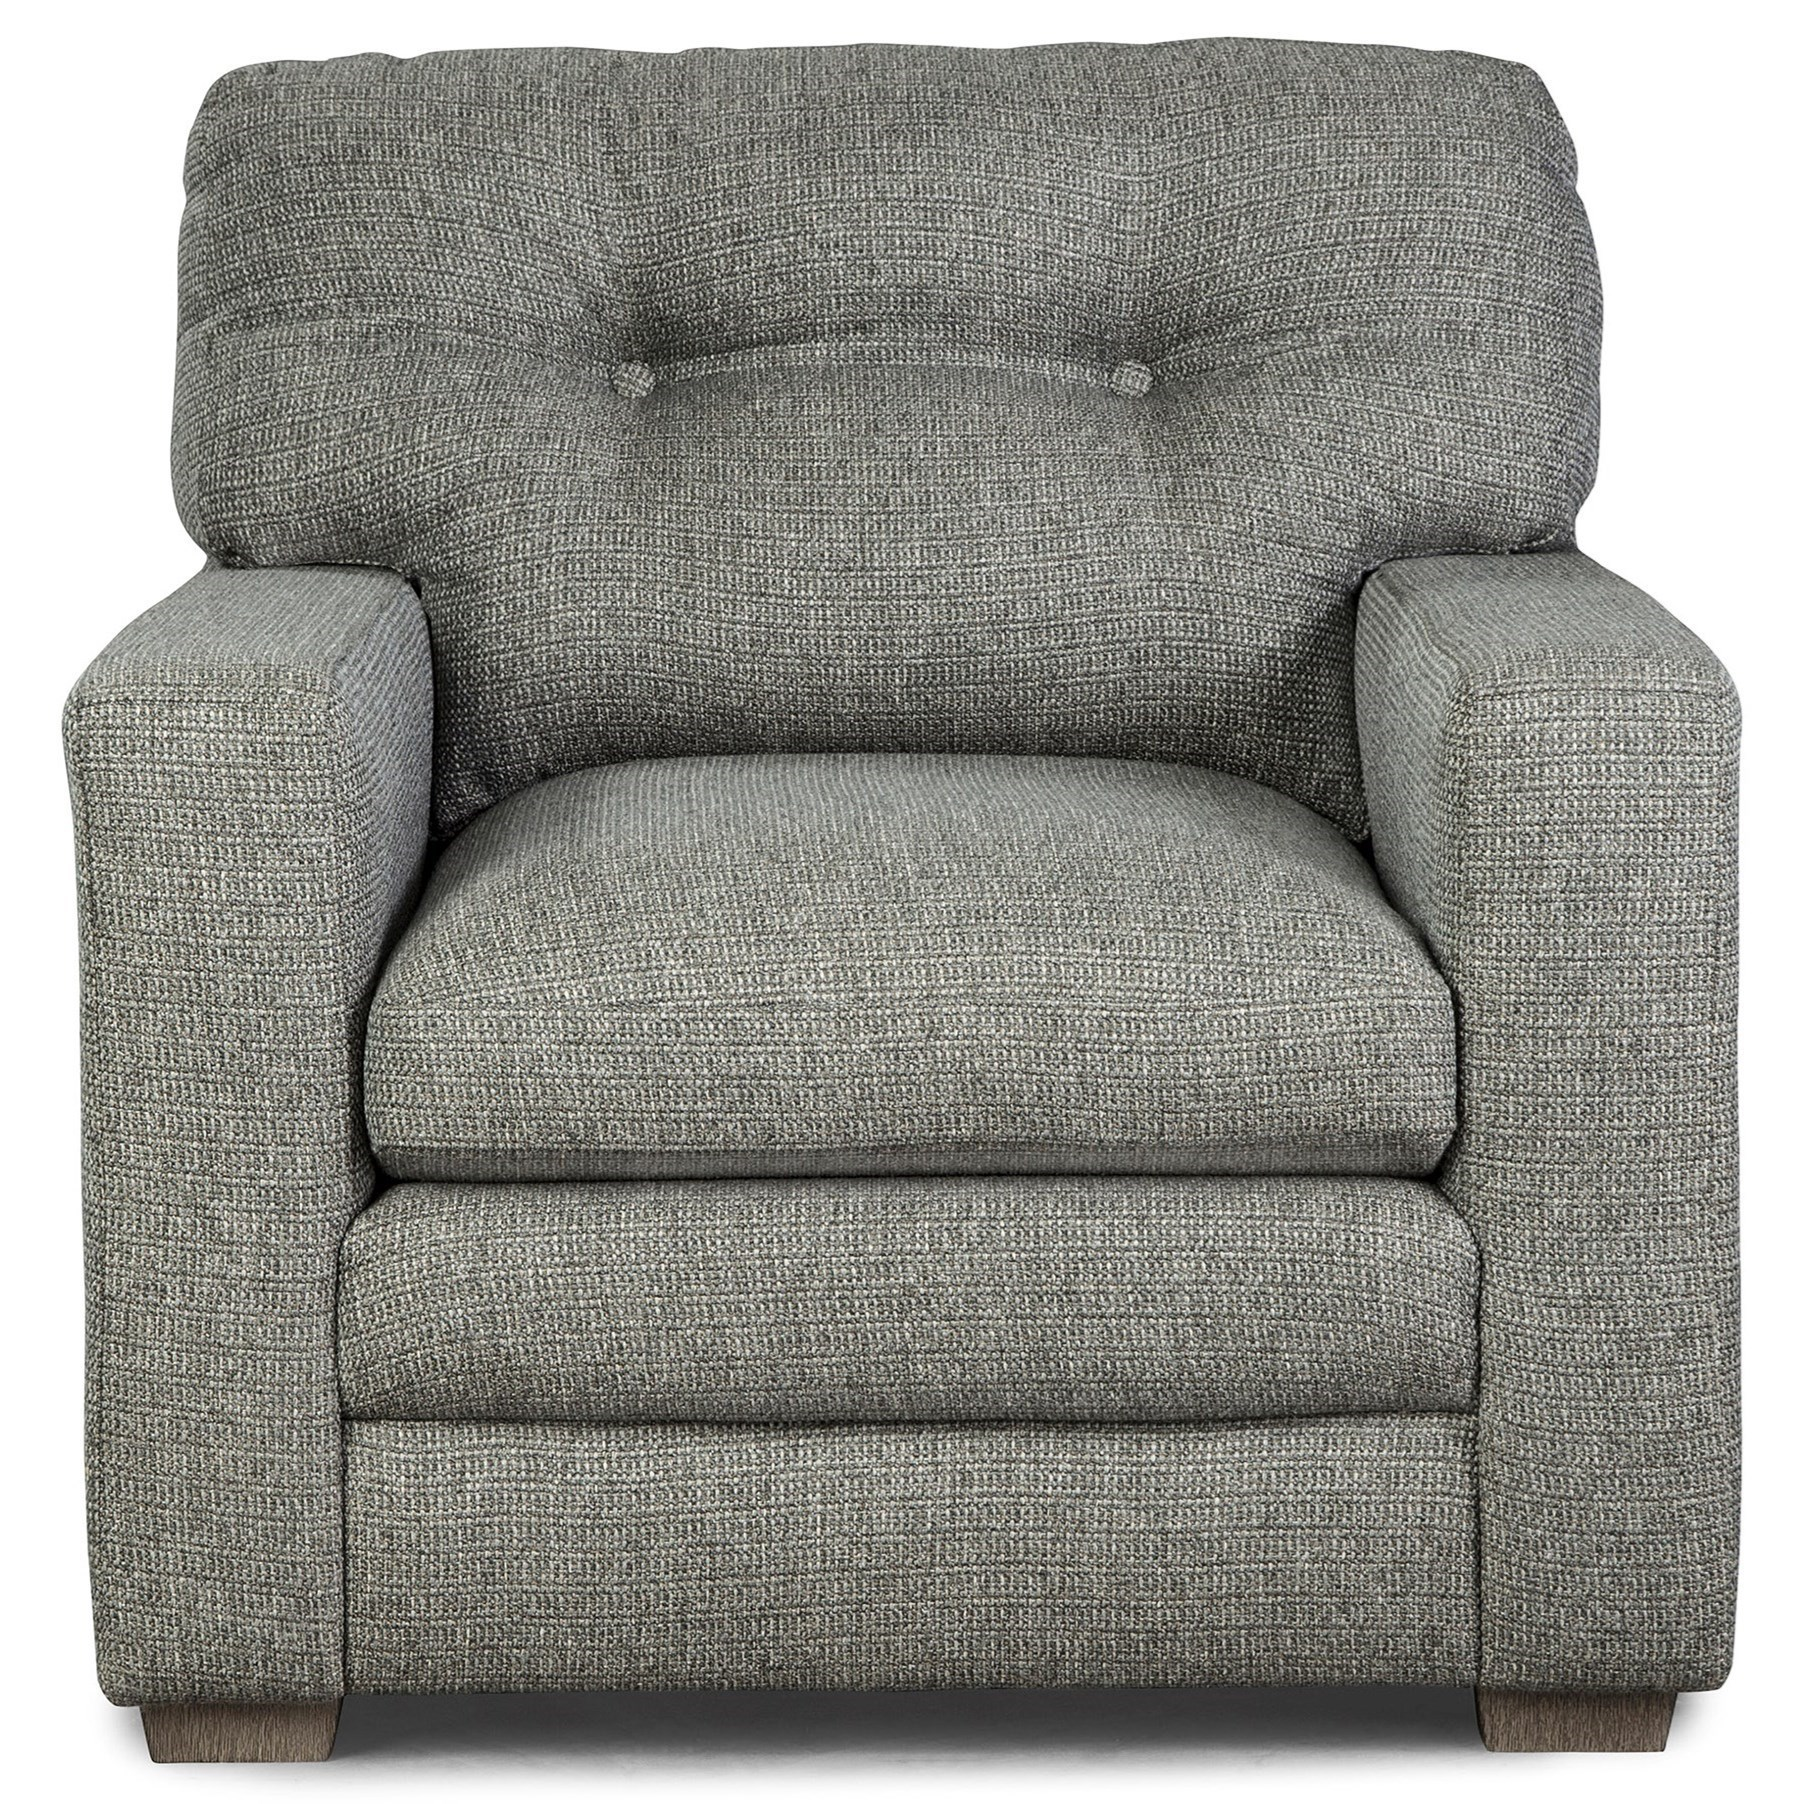 Best Home Furnishings Cabrillo C28 Contemporary Tufted Chair